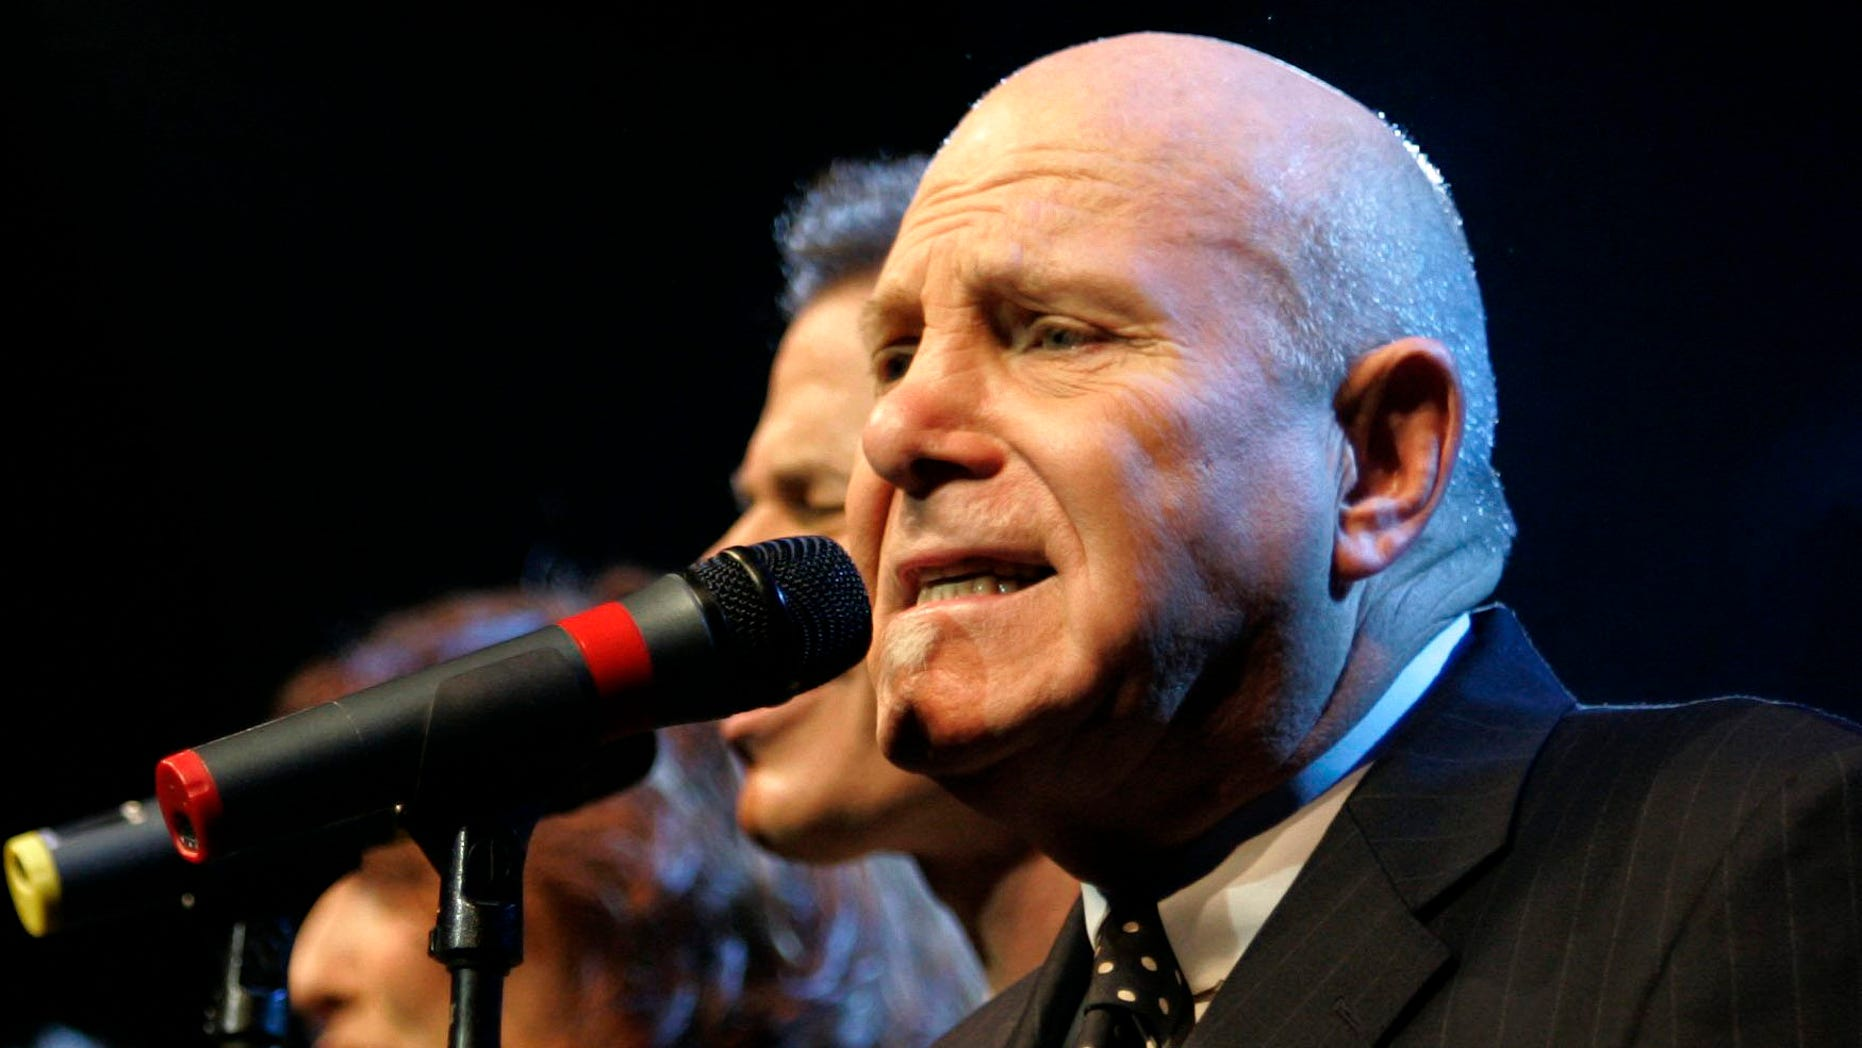 Nov. 8, 2006.Tim Hauser, right, performs with the other members of the U.S. vocal group The Manhattan Transfer at the Avo Session in Basel, Switzerland.